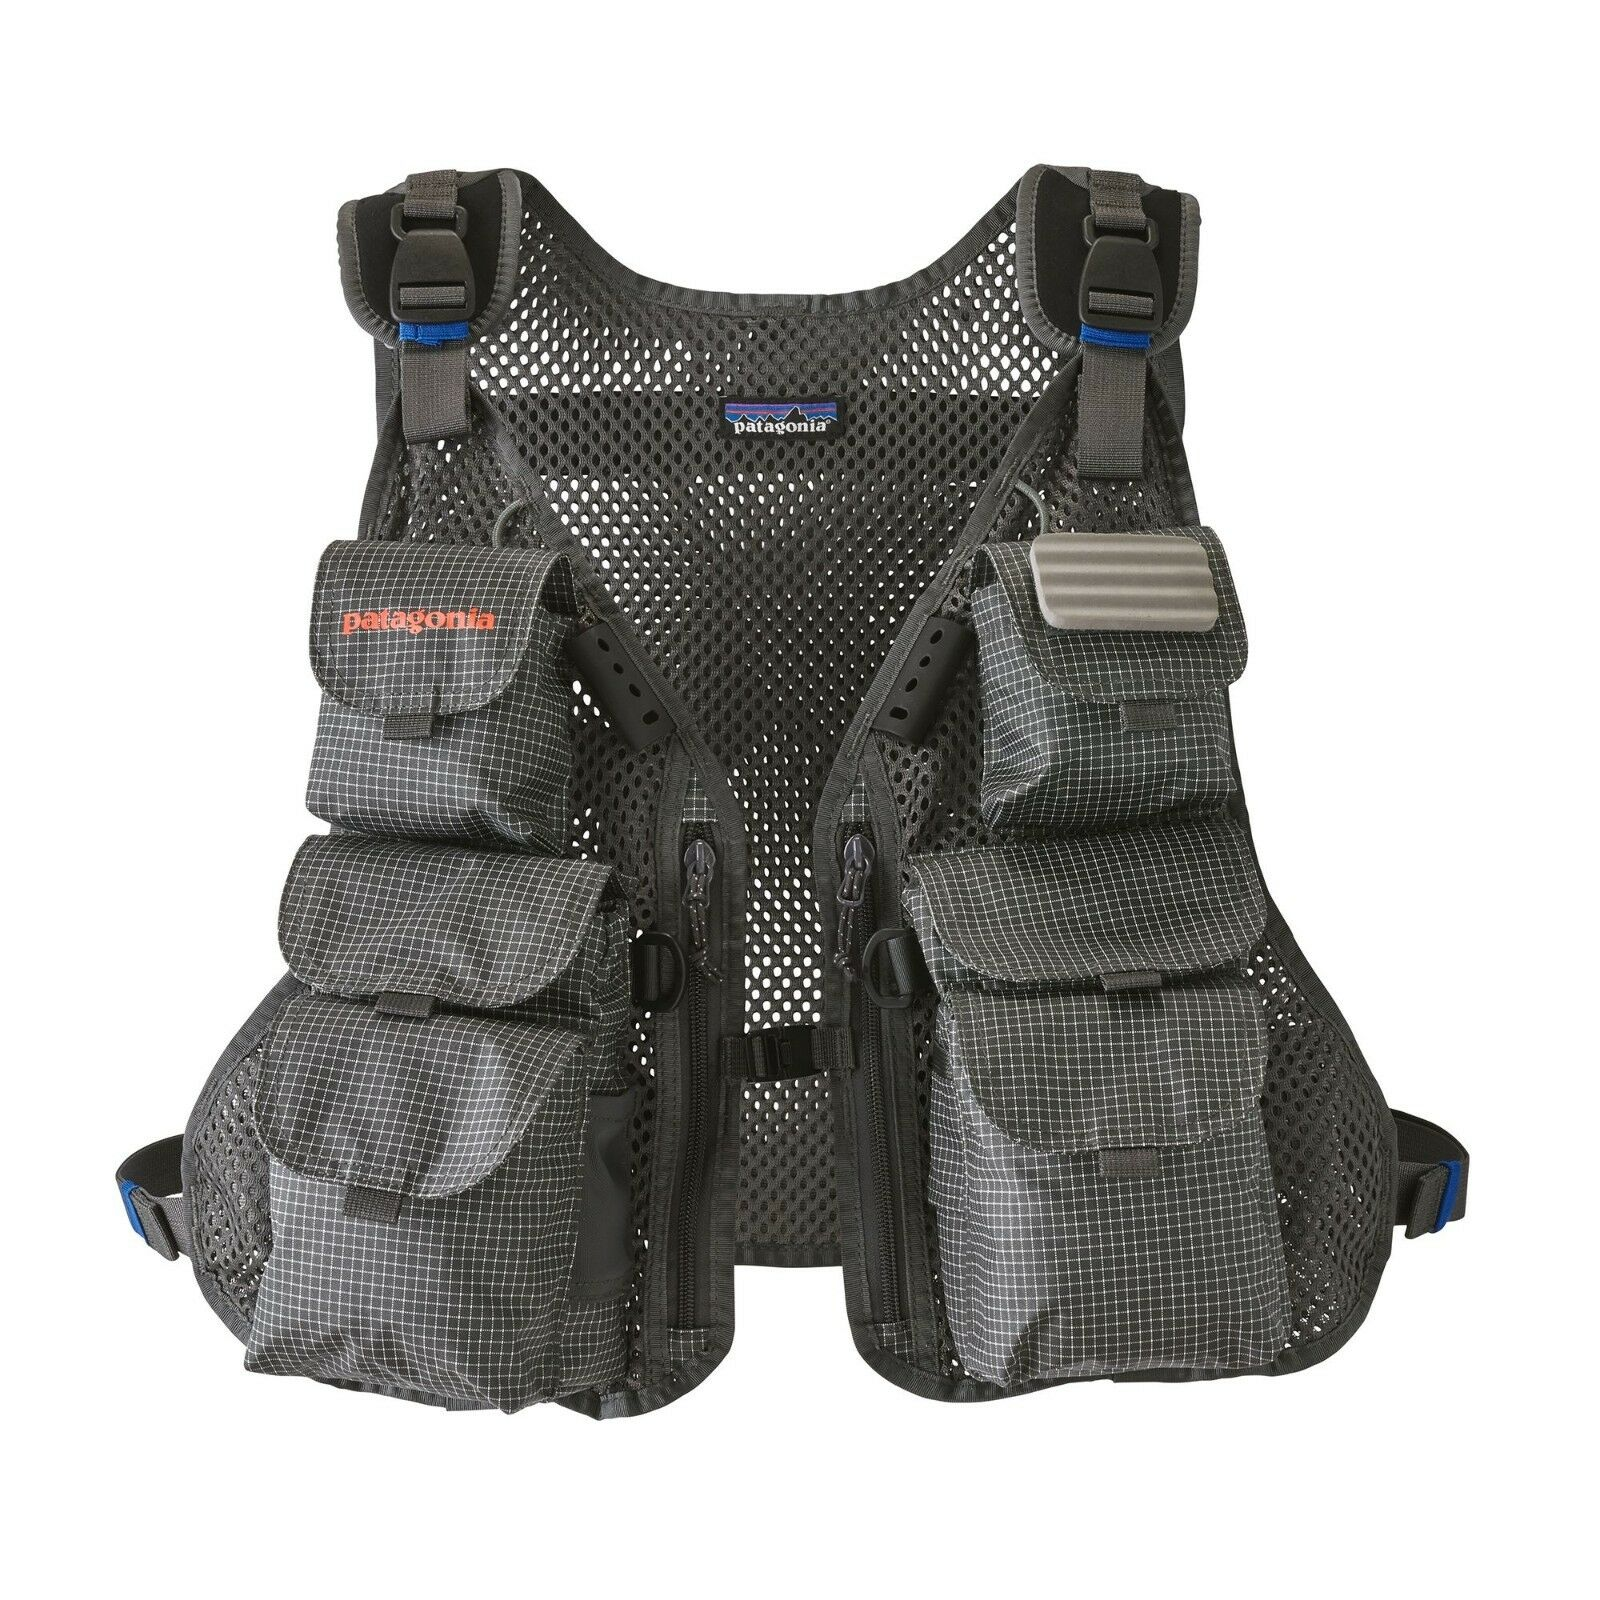 Patagonia FLY FISHING Converdeible Vest-Forge grigio